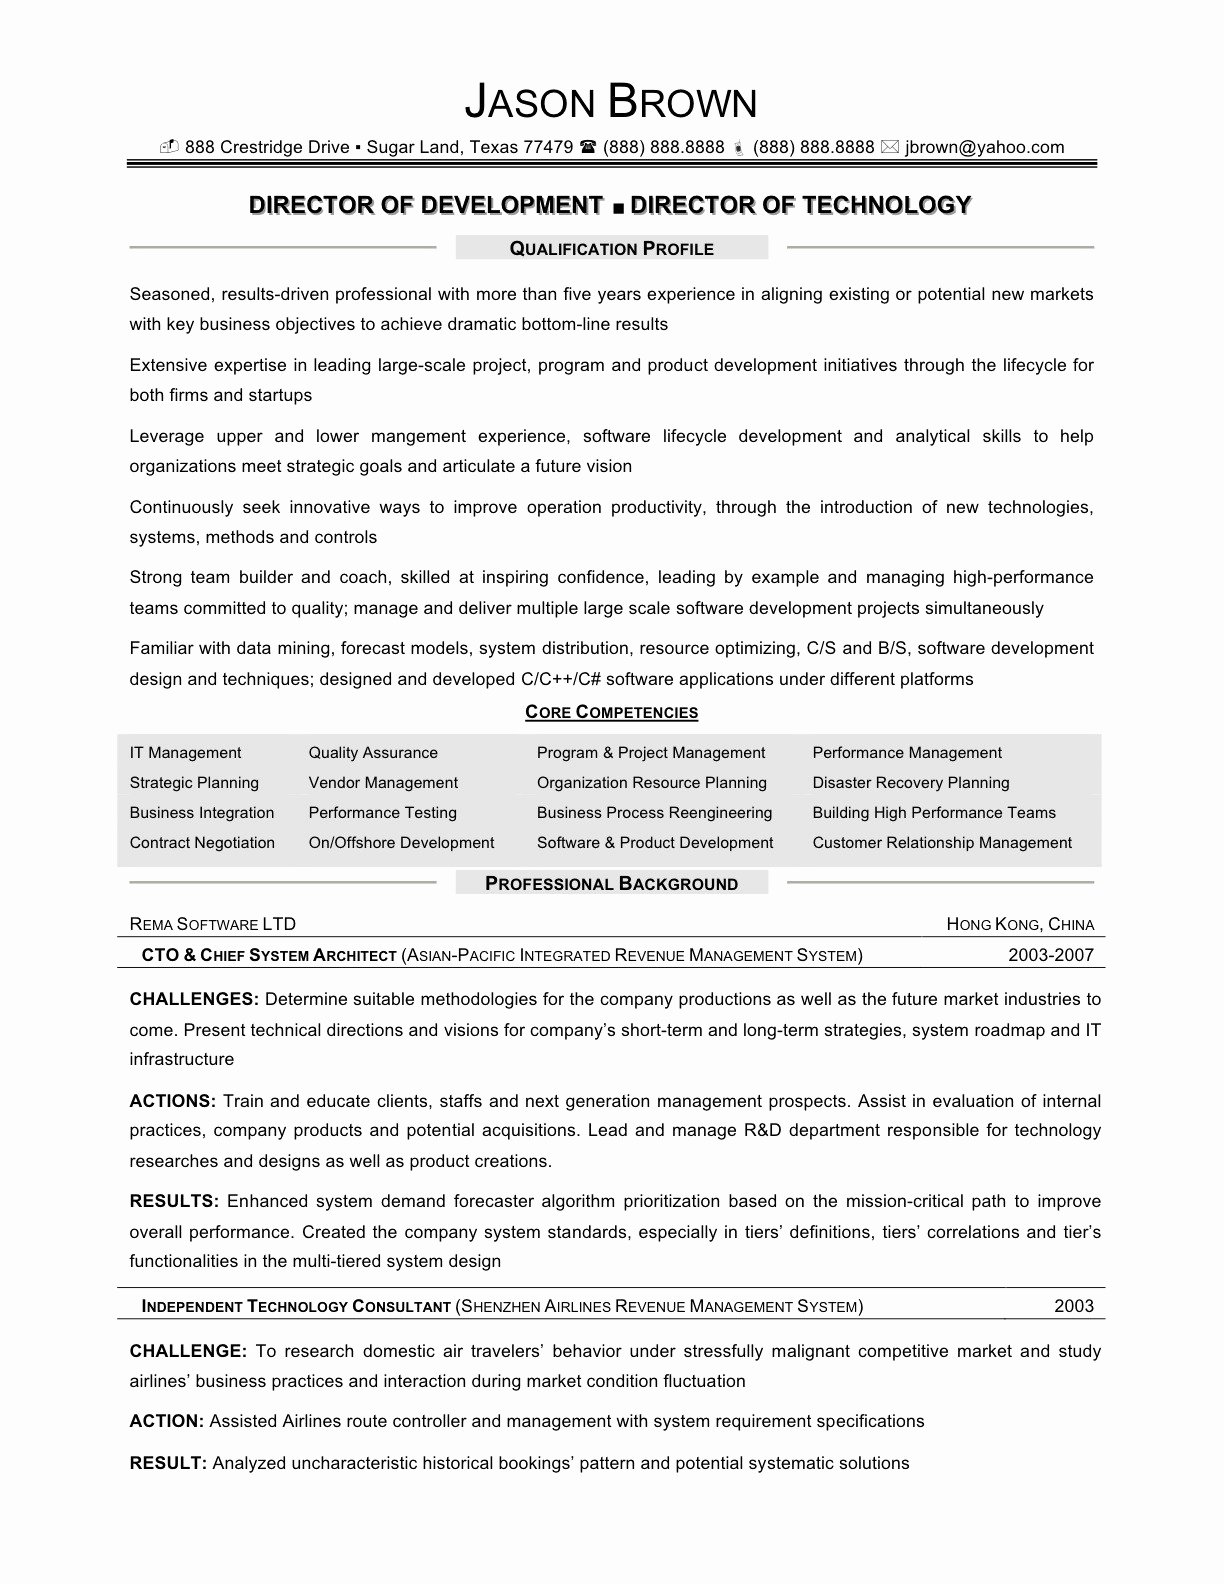 Sample Information Technology Resume Resume Examples for